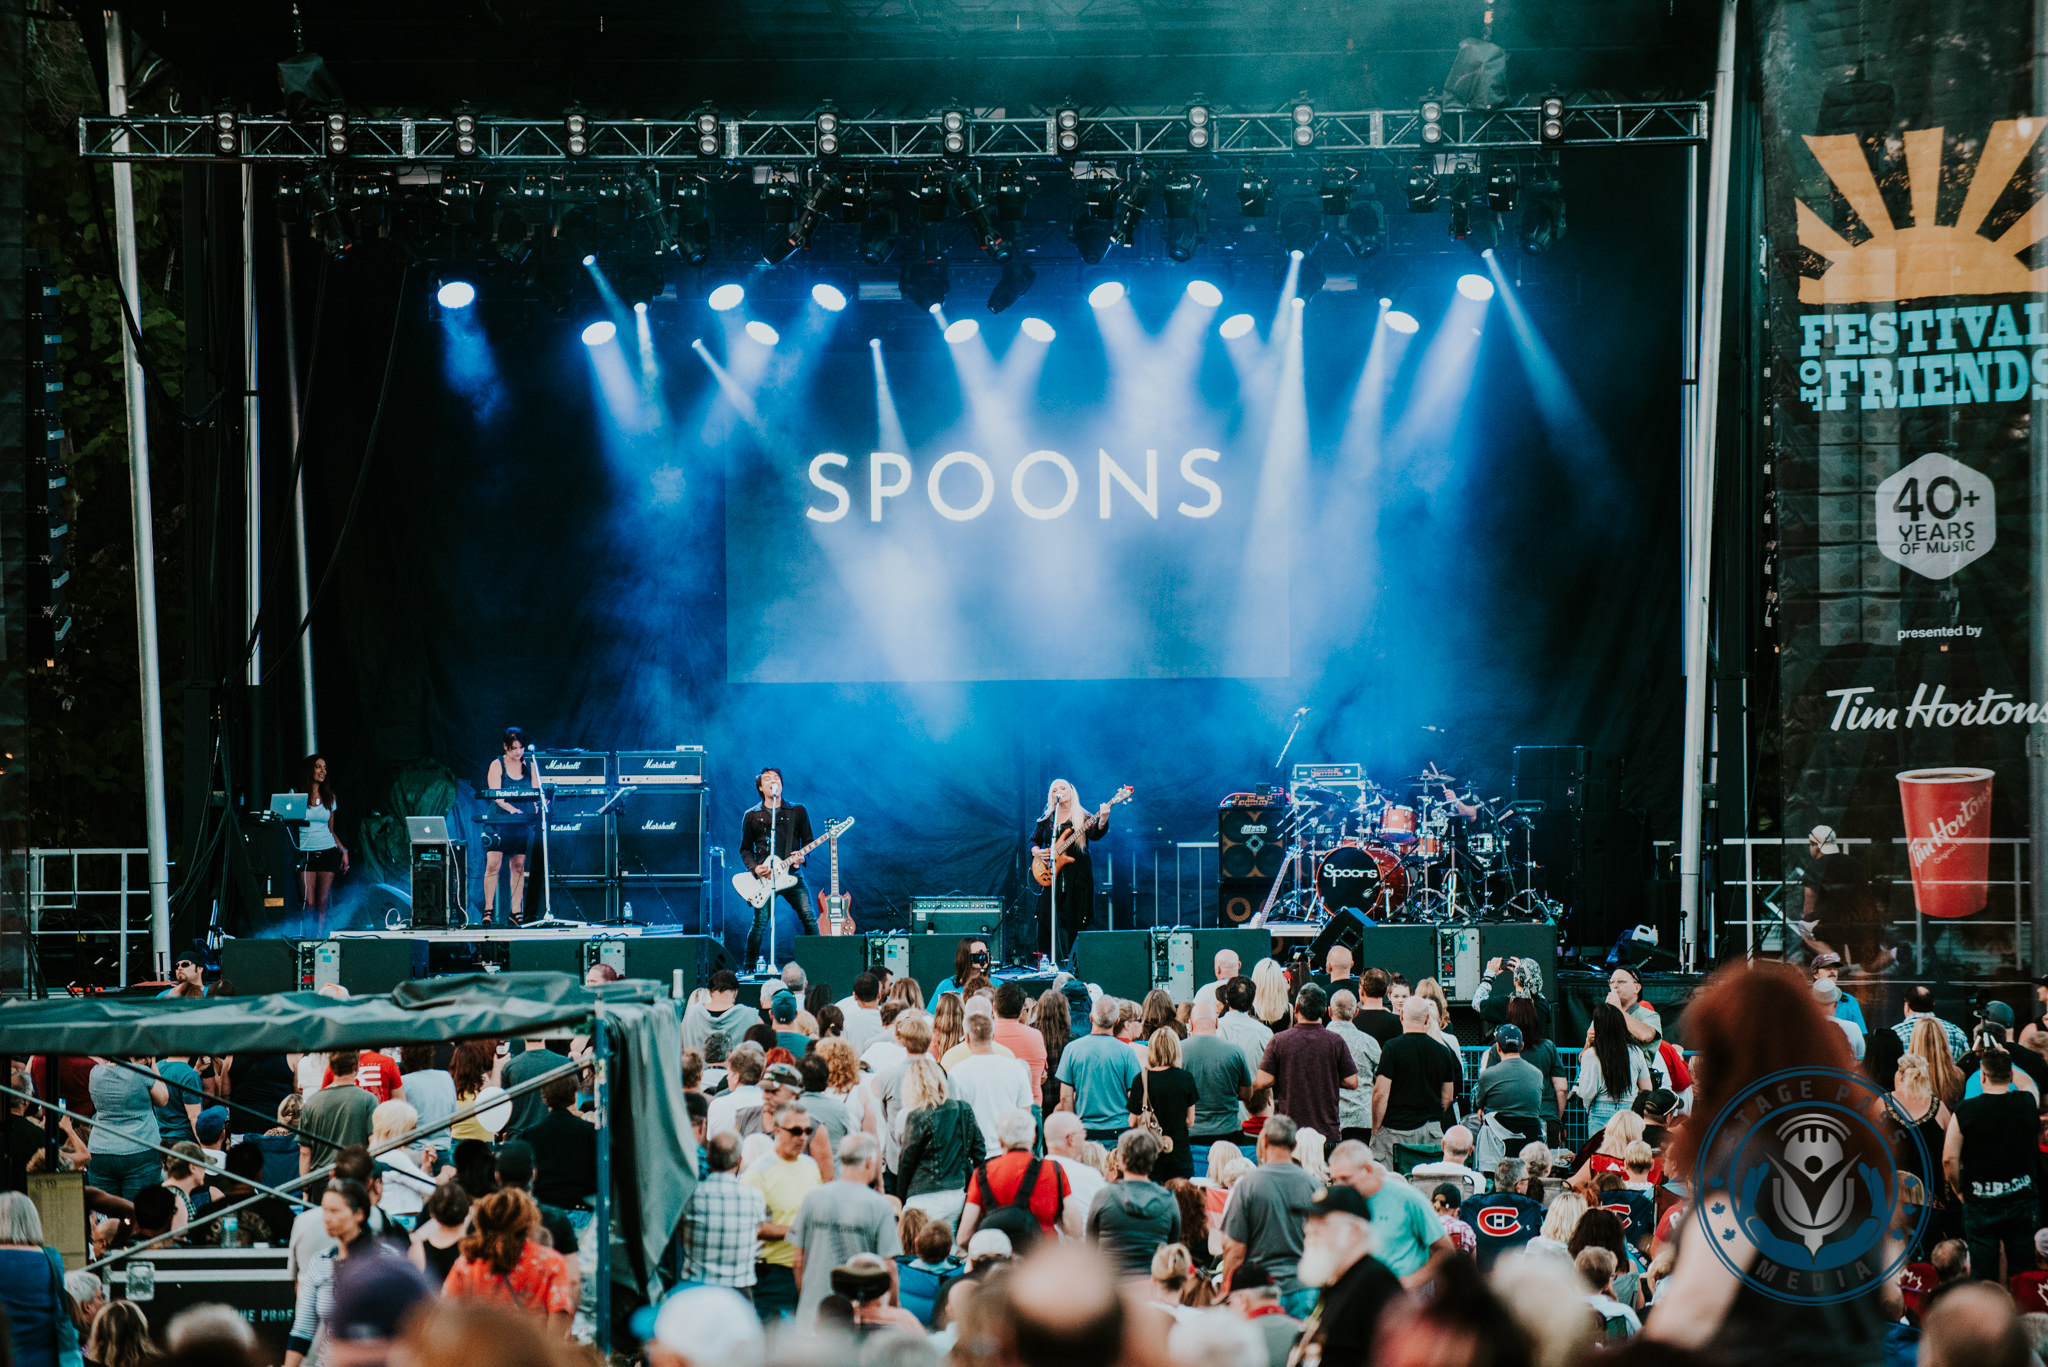 THE SPOONS